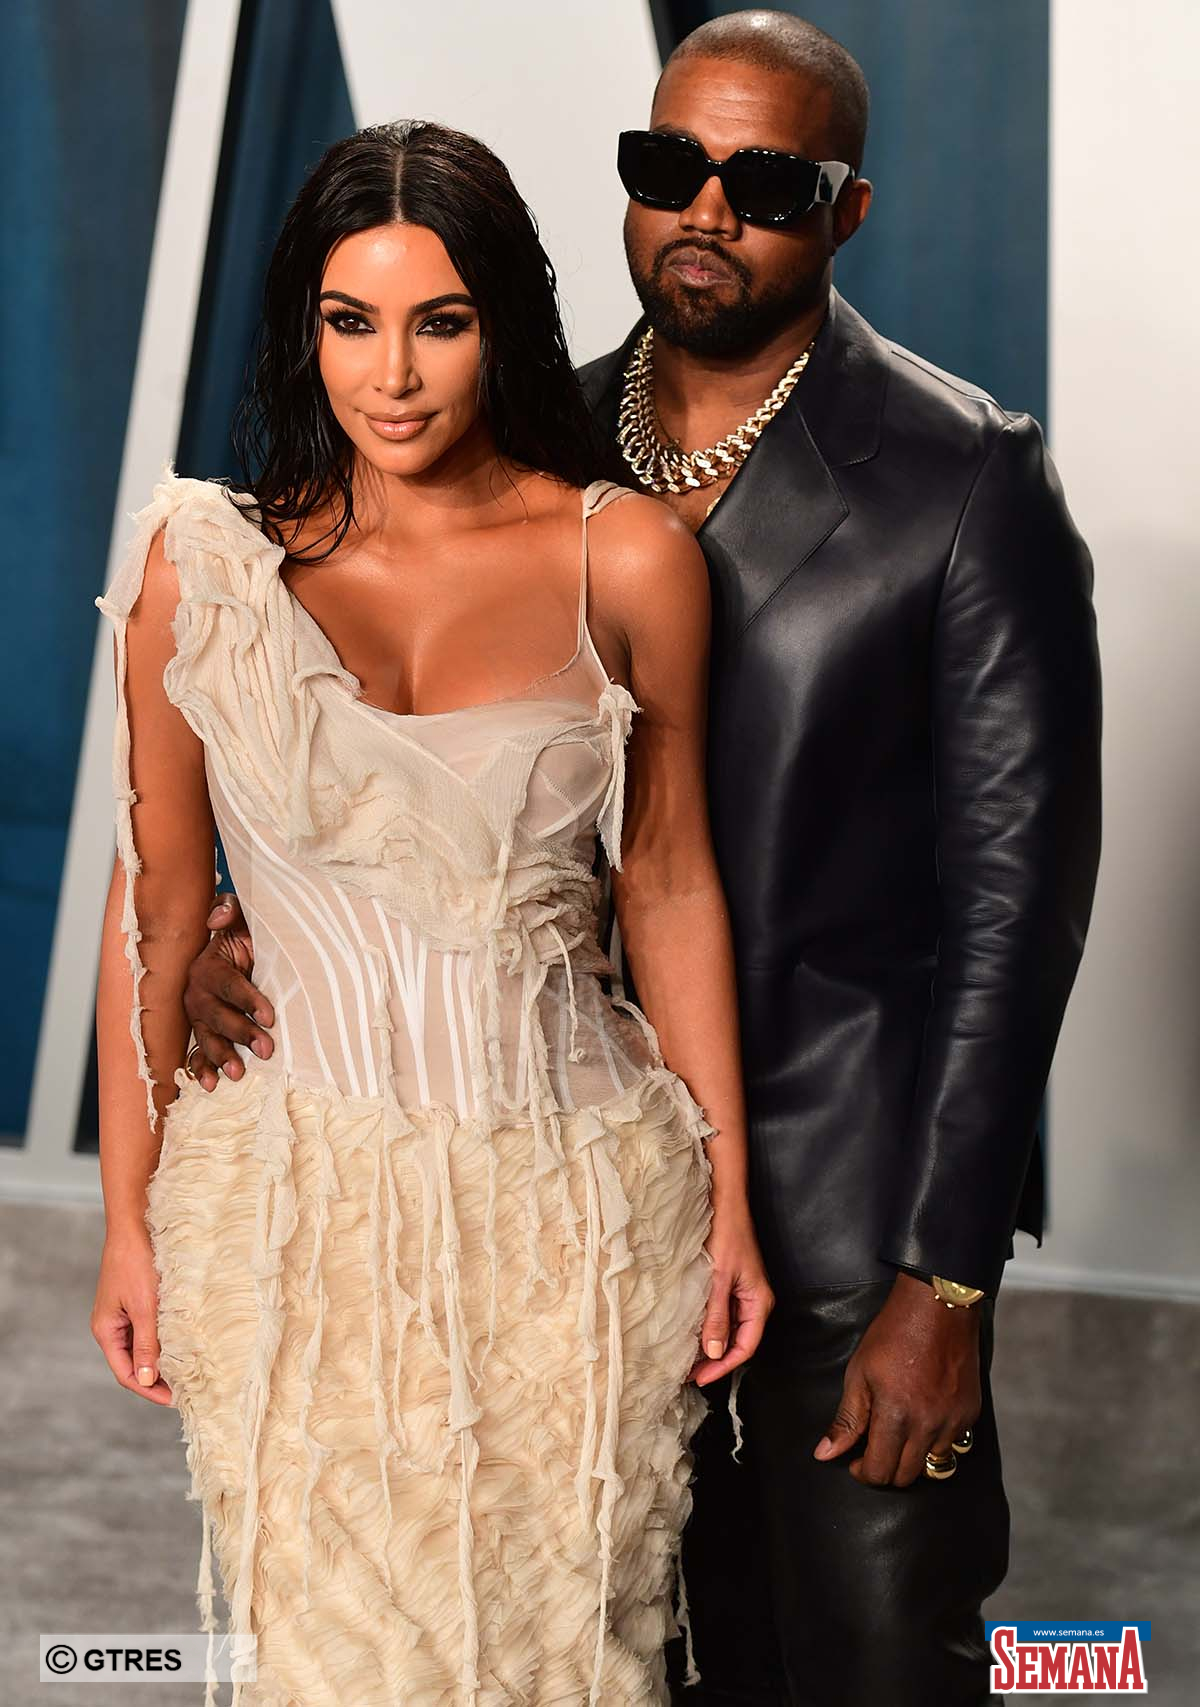 Kim Kardashian and singer Kanye West attending the Vanity Fair Oscar Party 2020  on February 9, 2020 in Beverly Hills, CA.